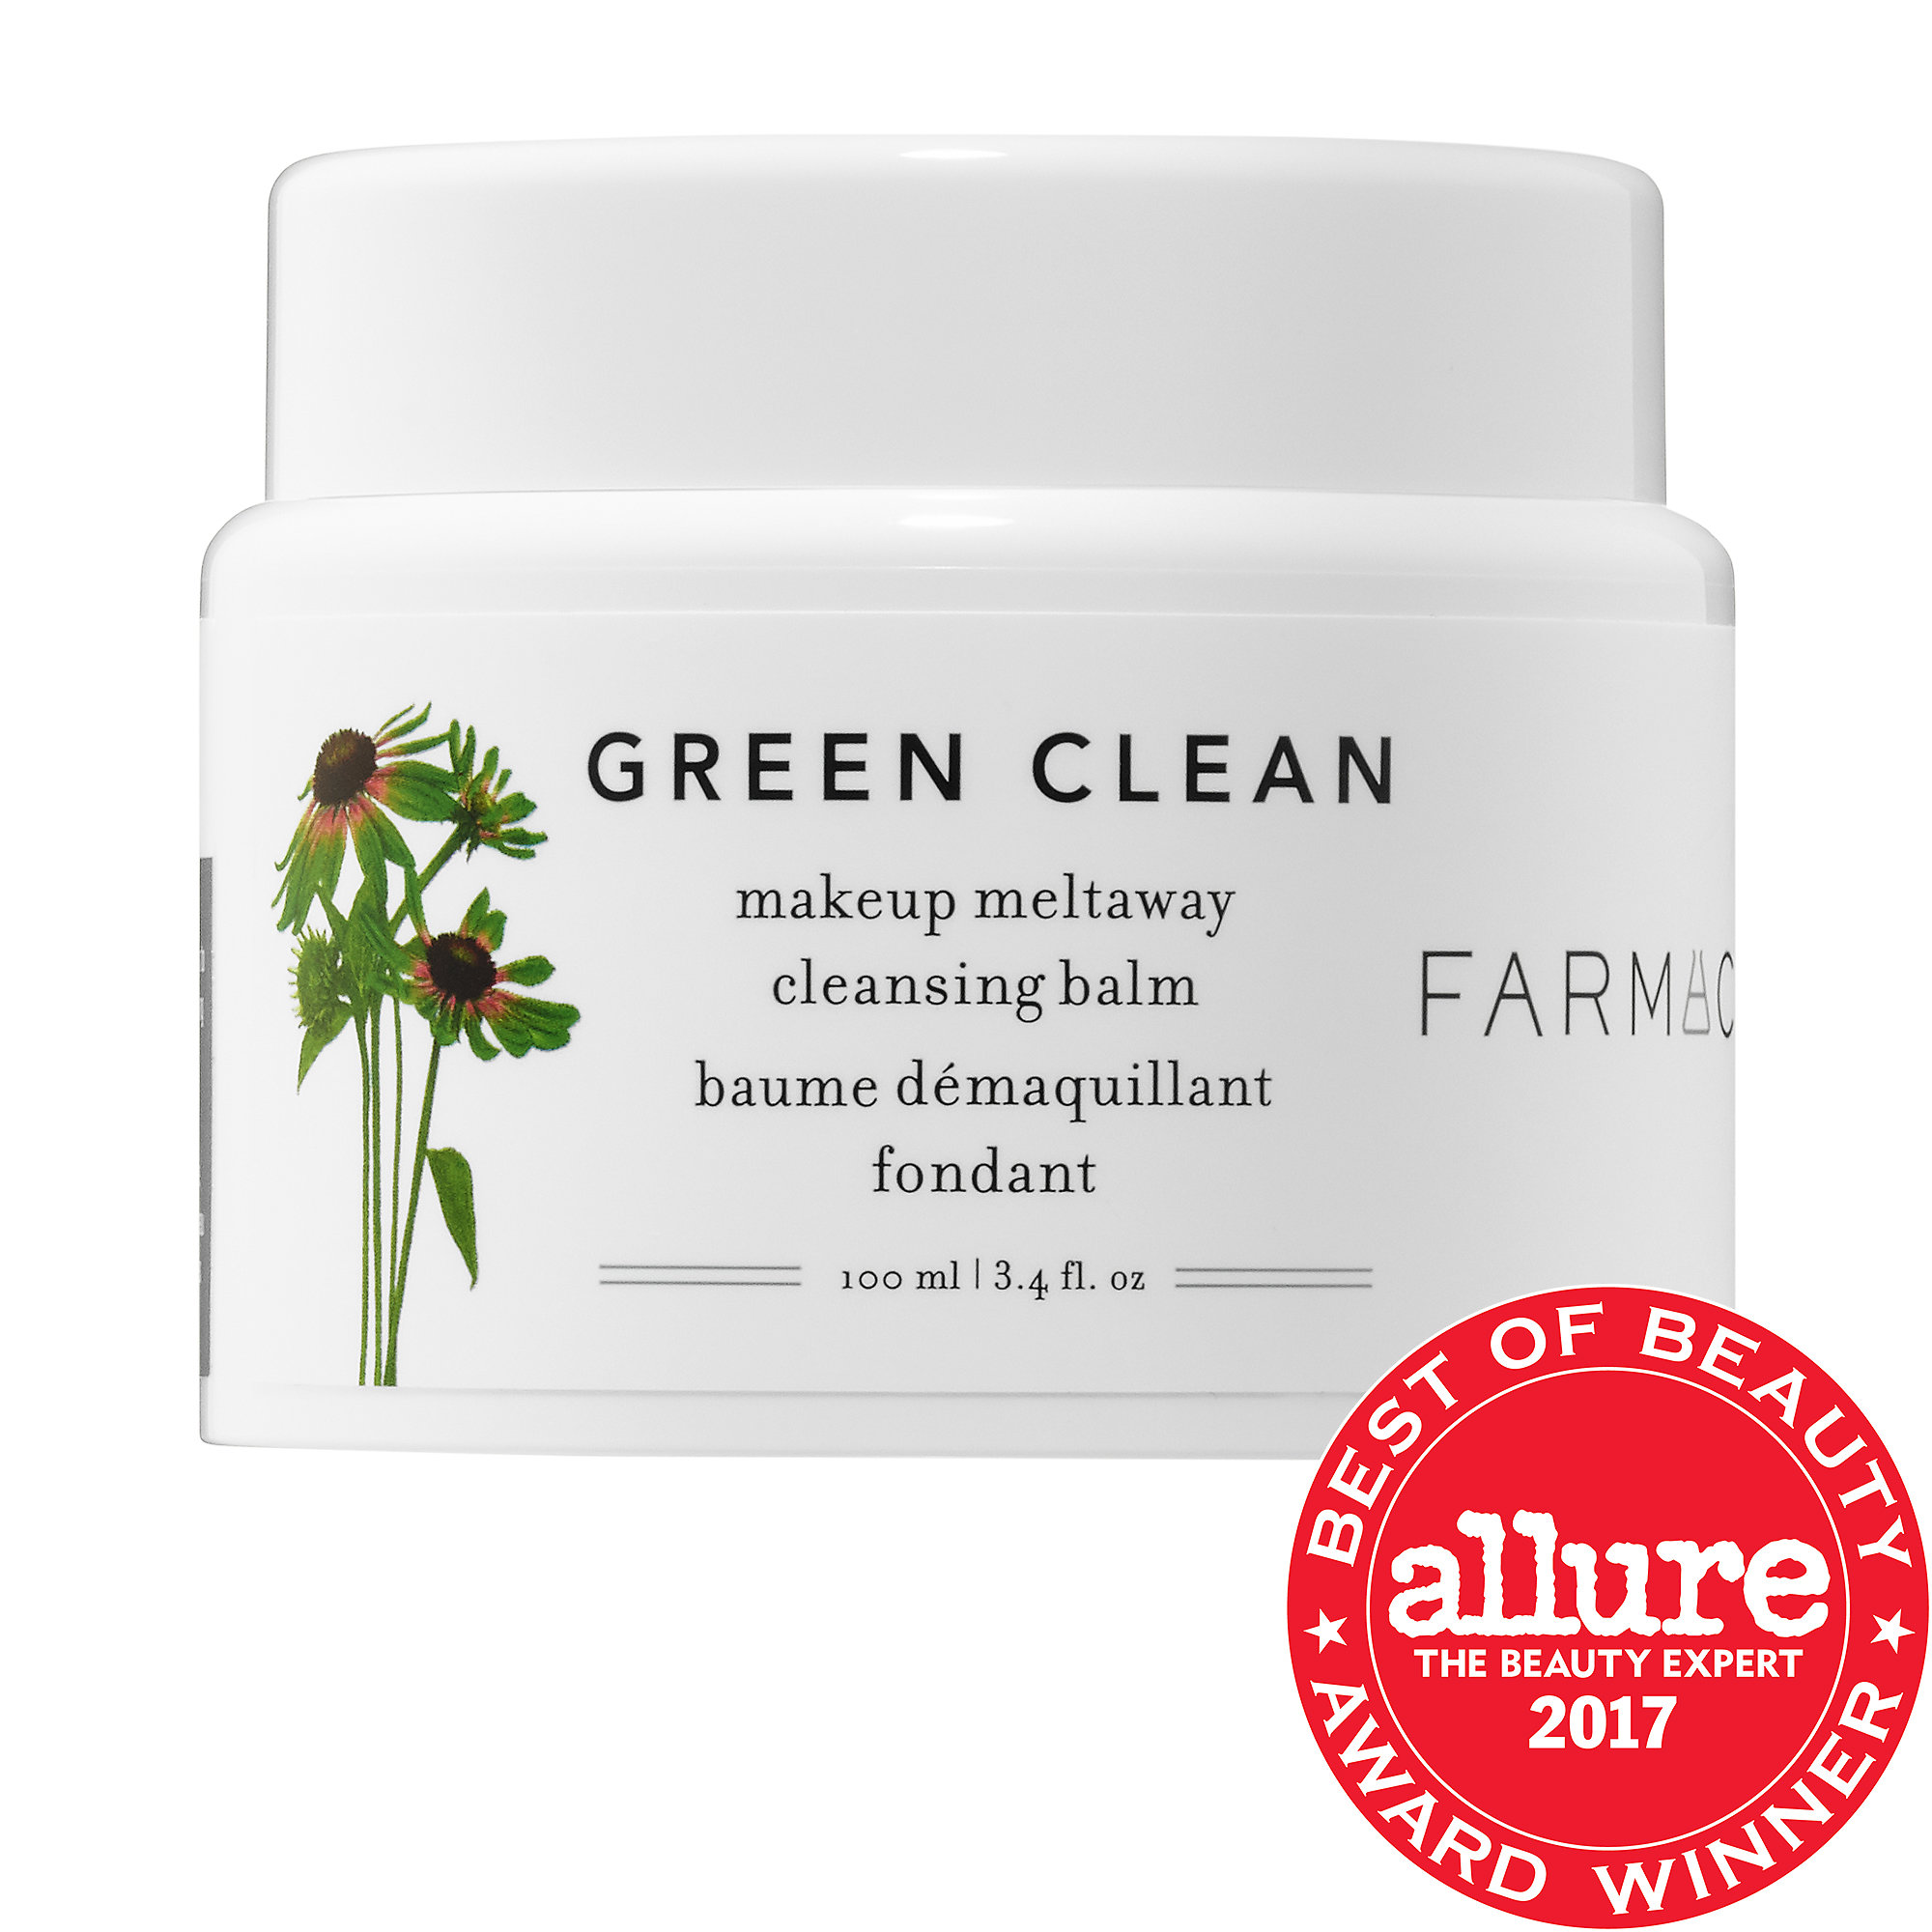 Farmacy-Green Clean Makeup Removing Cleansing Balm